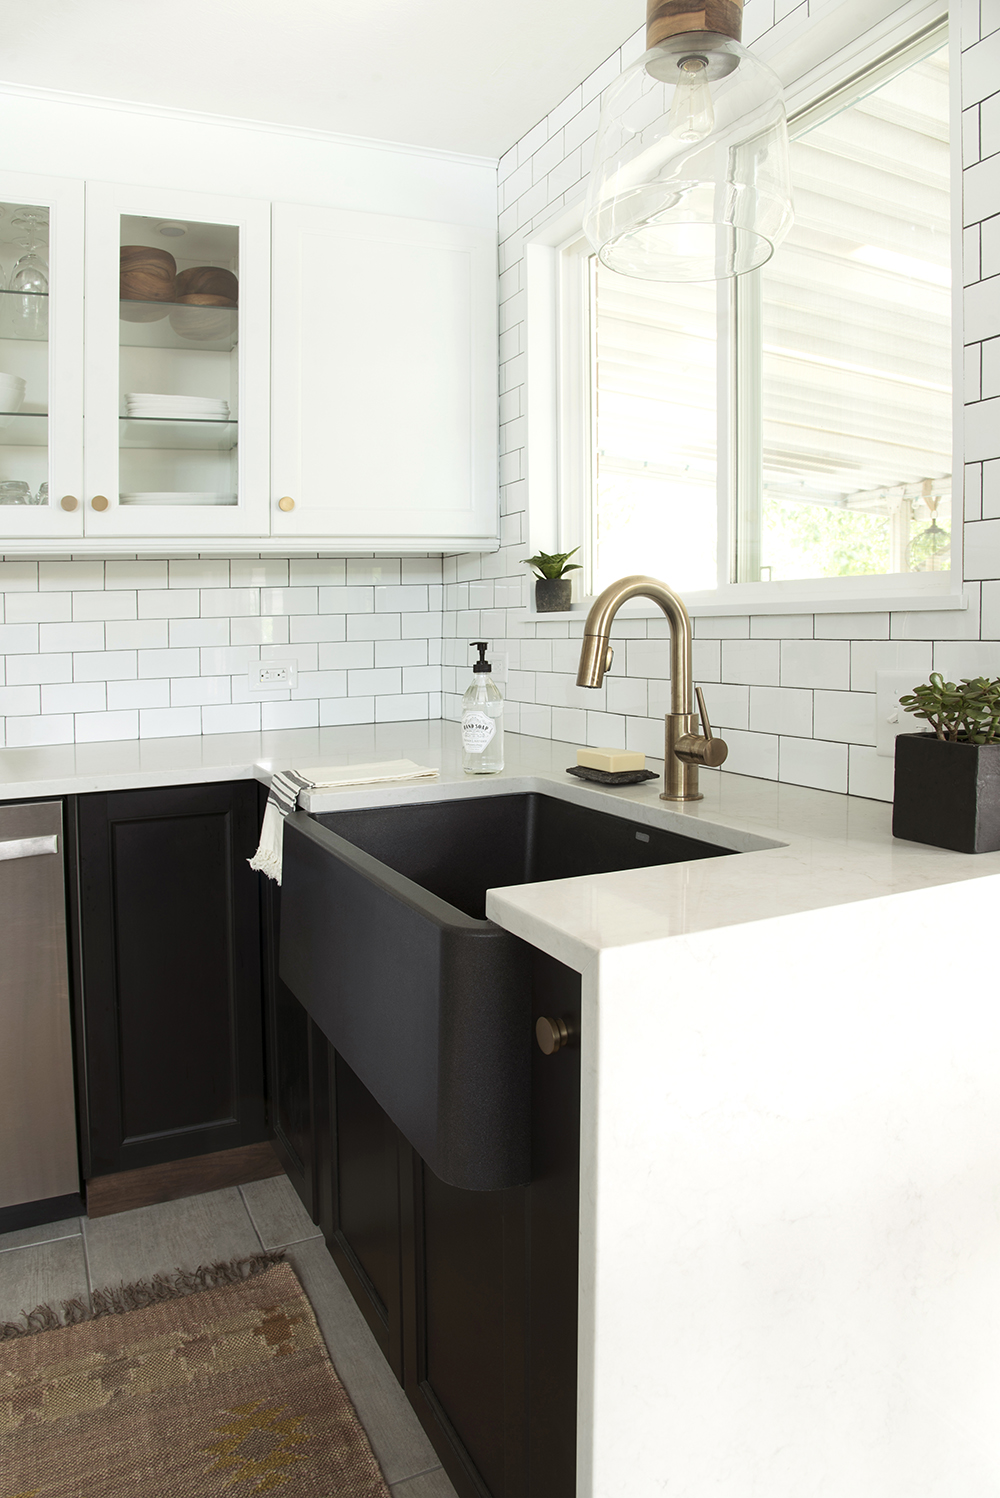 Countertop with Waterfall Edge